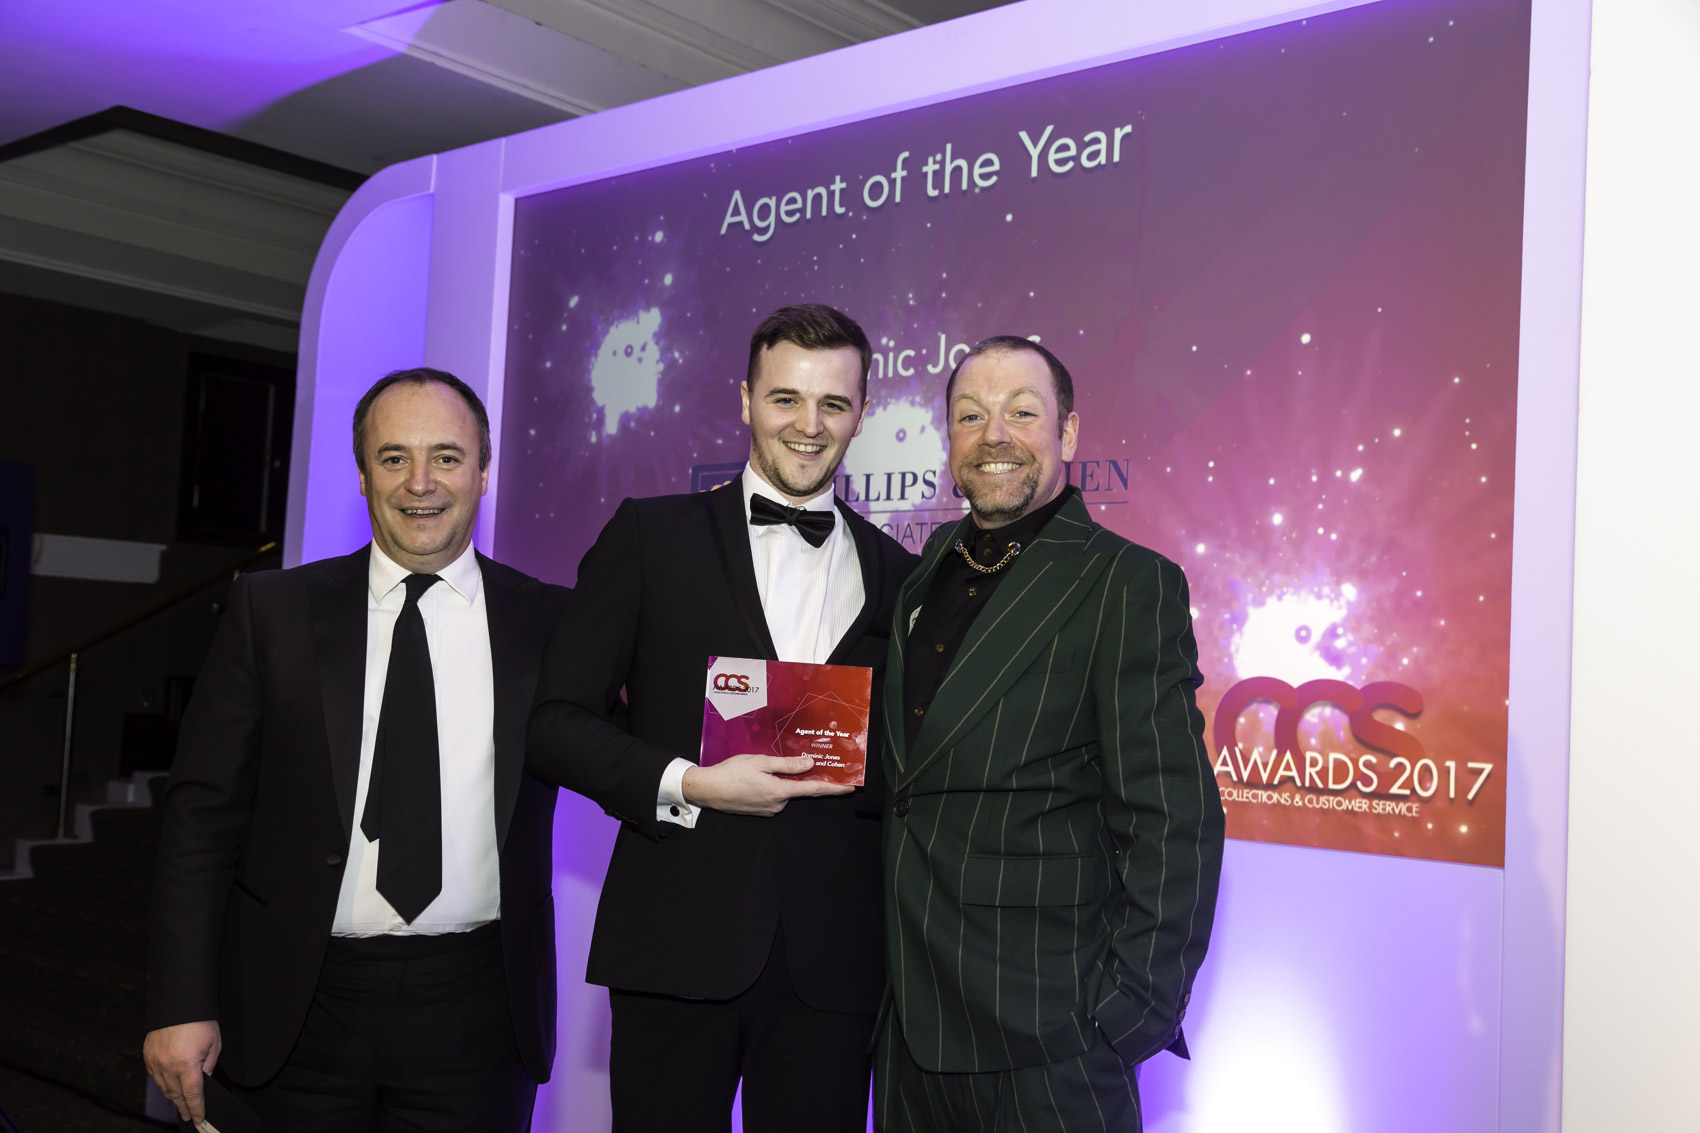 Winners CCS 2017 - 6 Agent of the Year